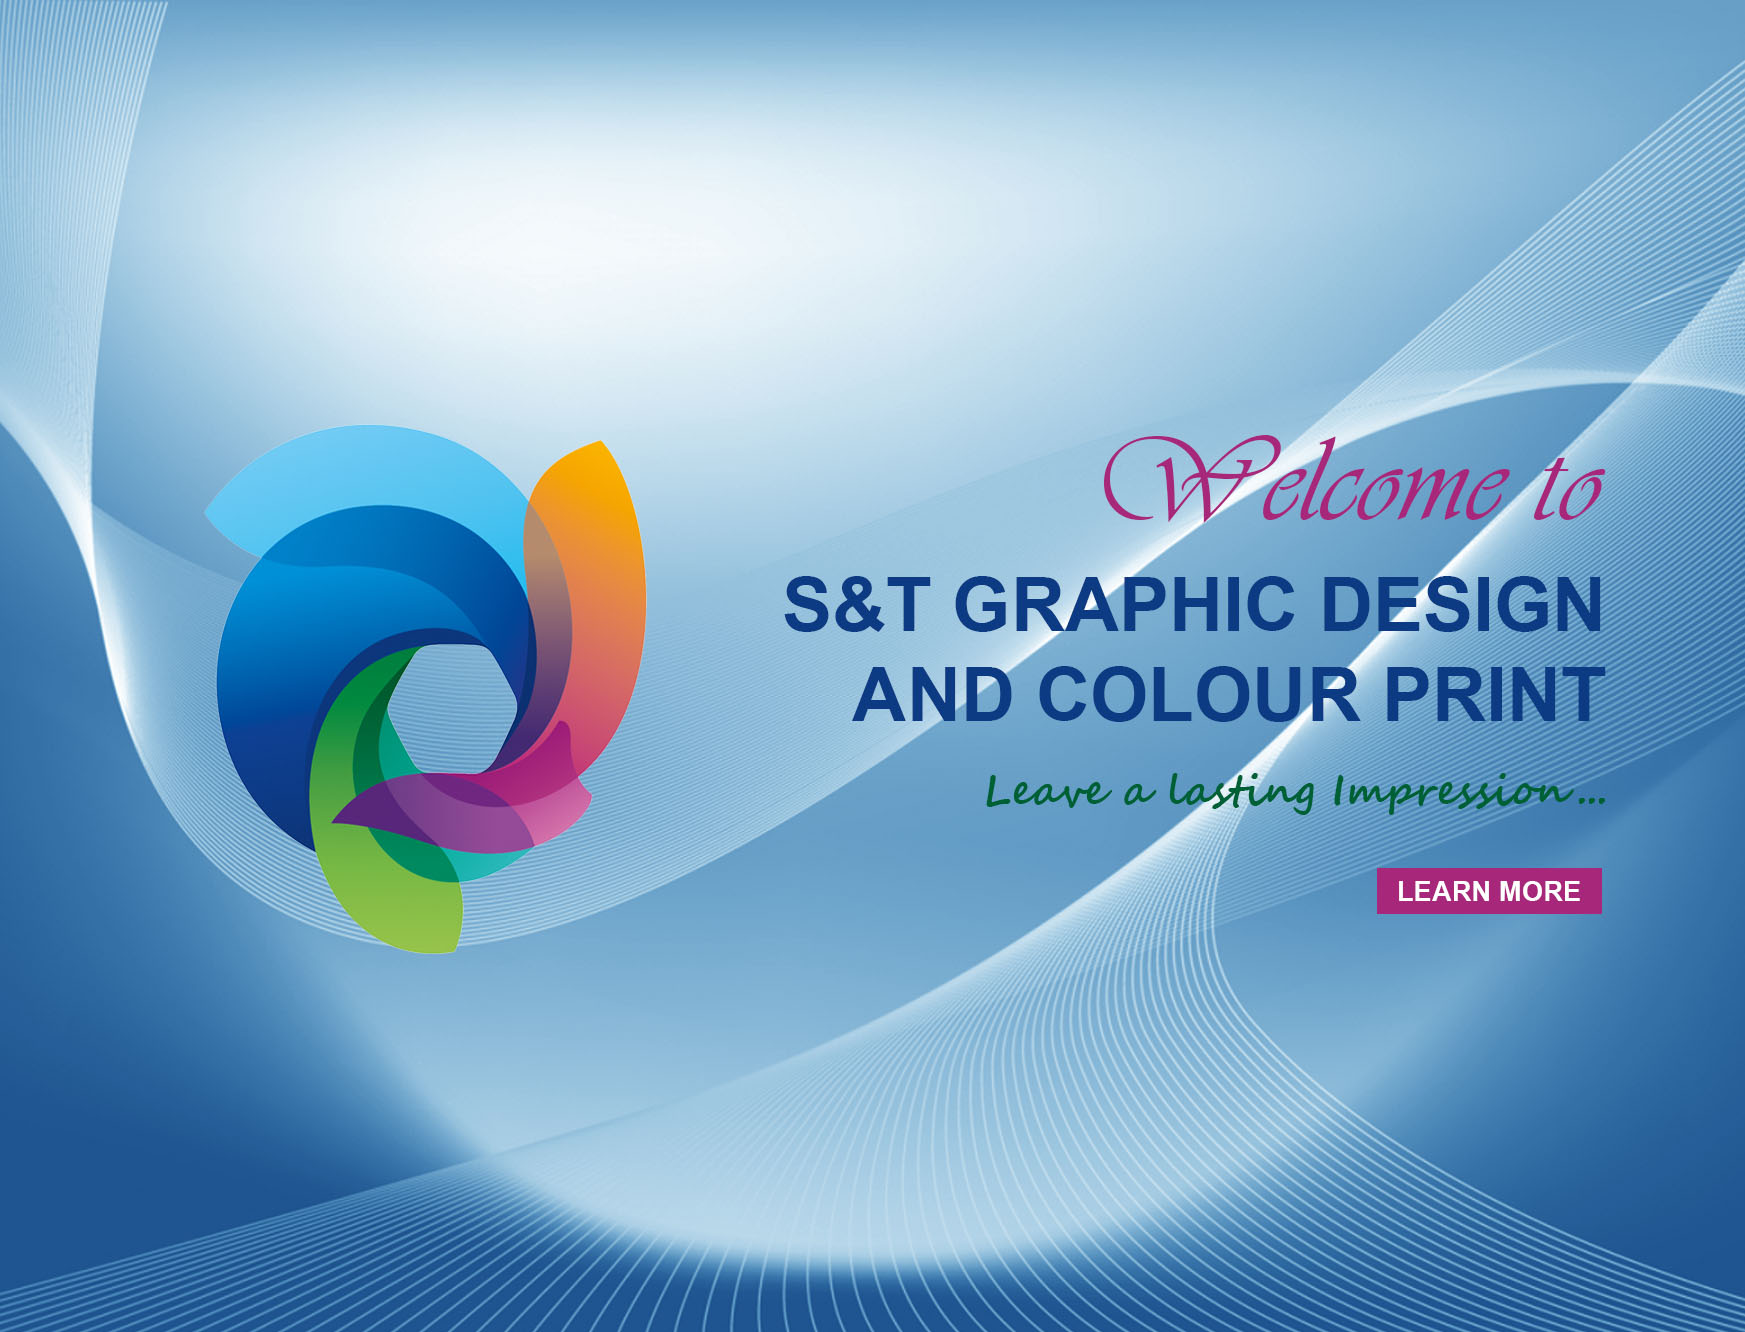 S&T Graphic Design and Colour Print Slider